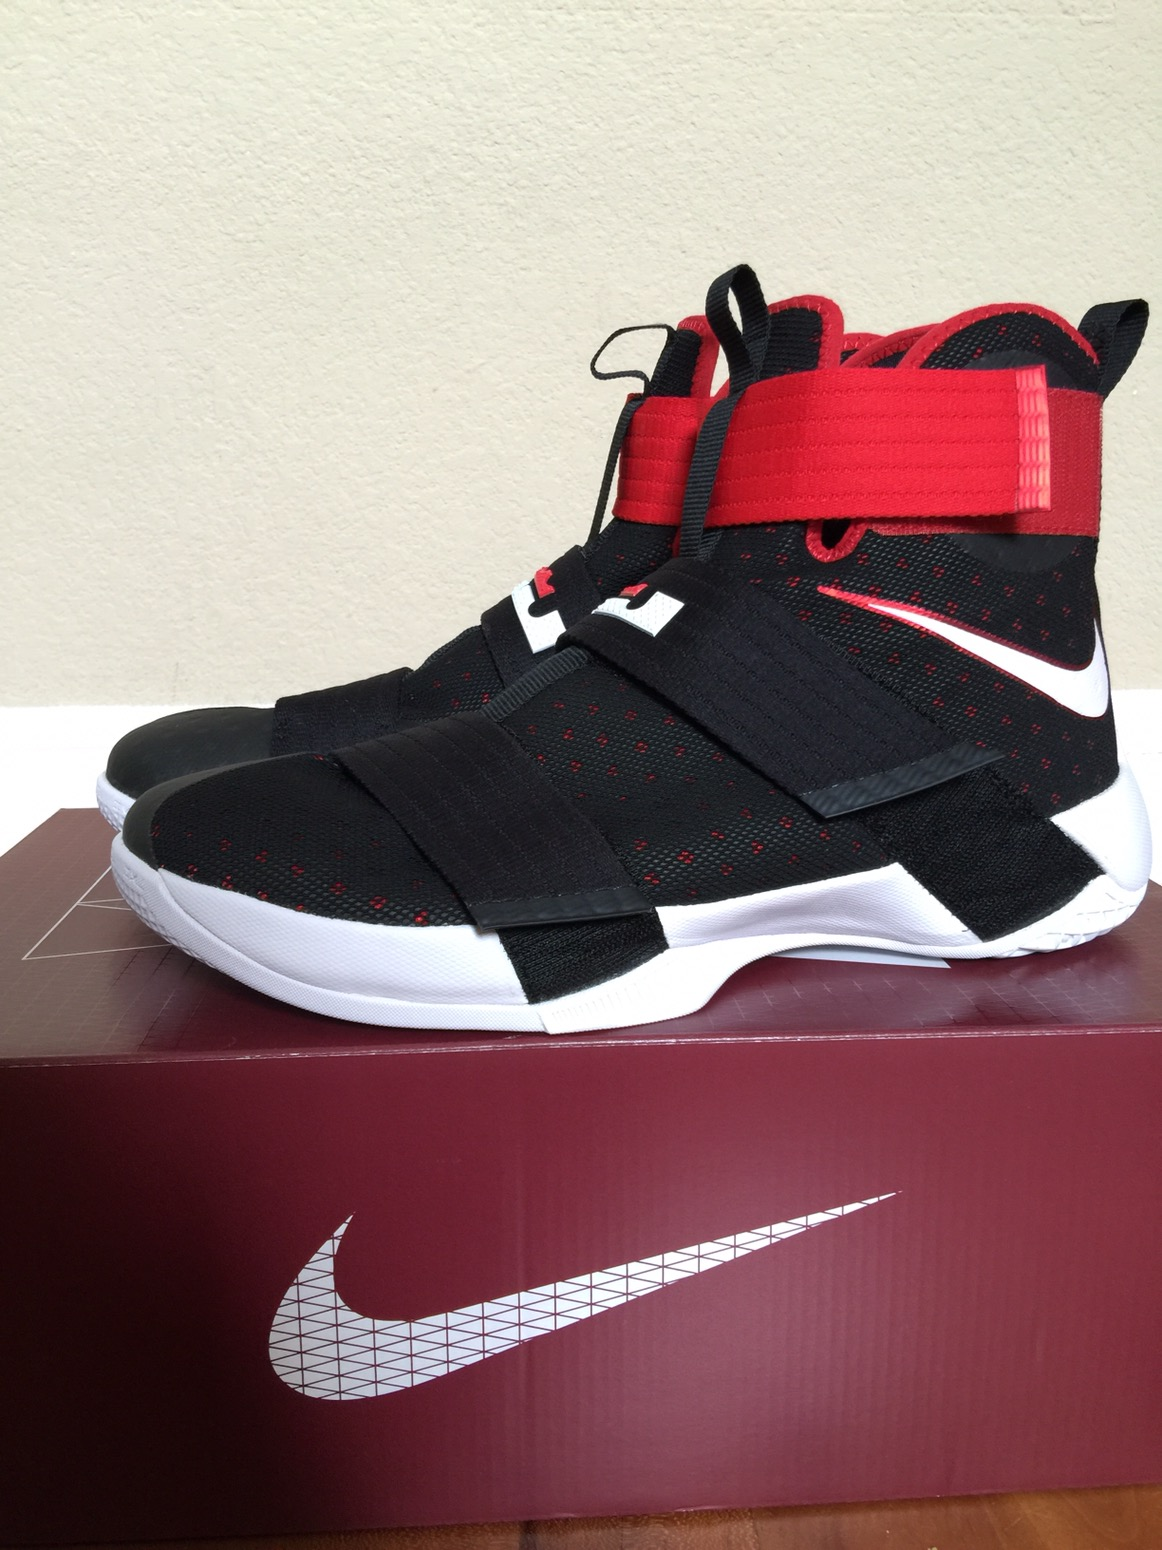 aefddc4f10c Nike Lebron Soldier X 10 Performance Review